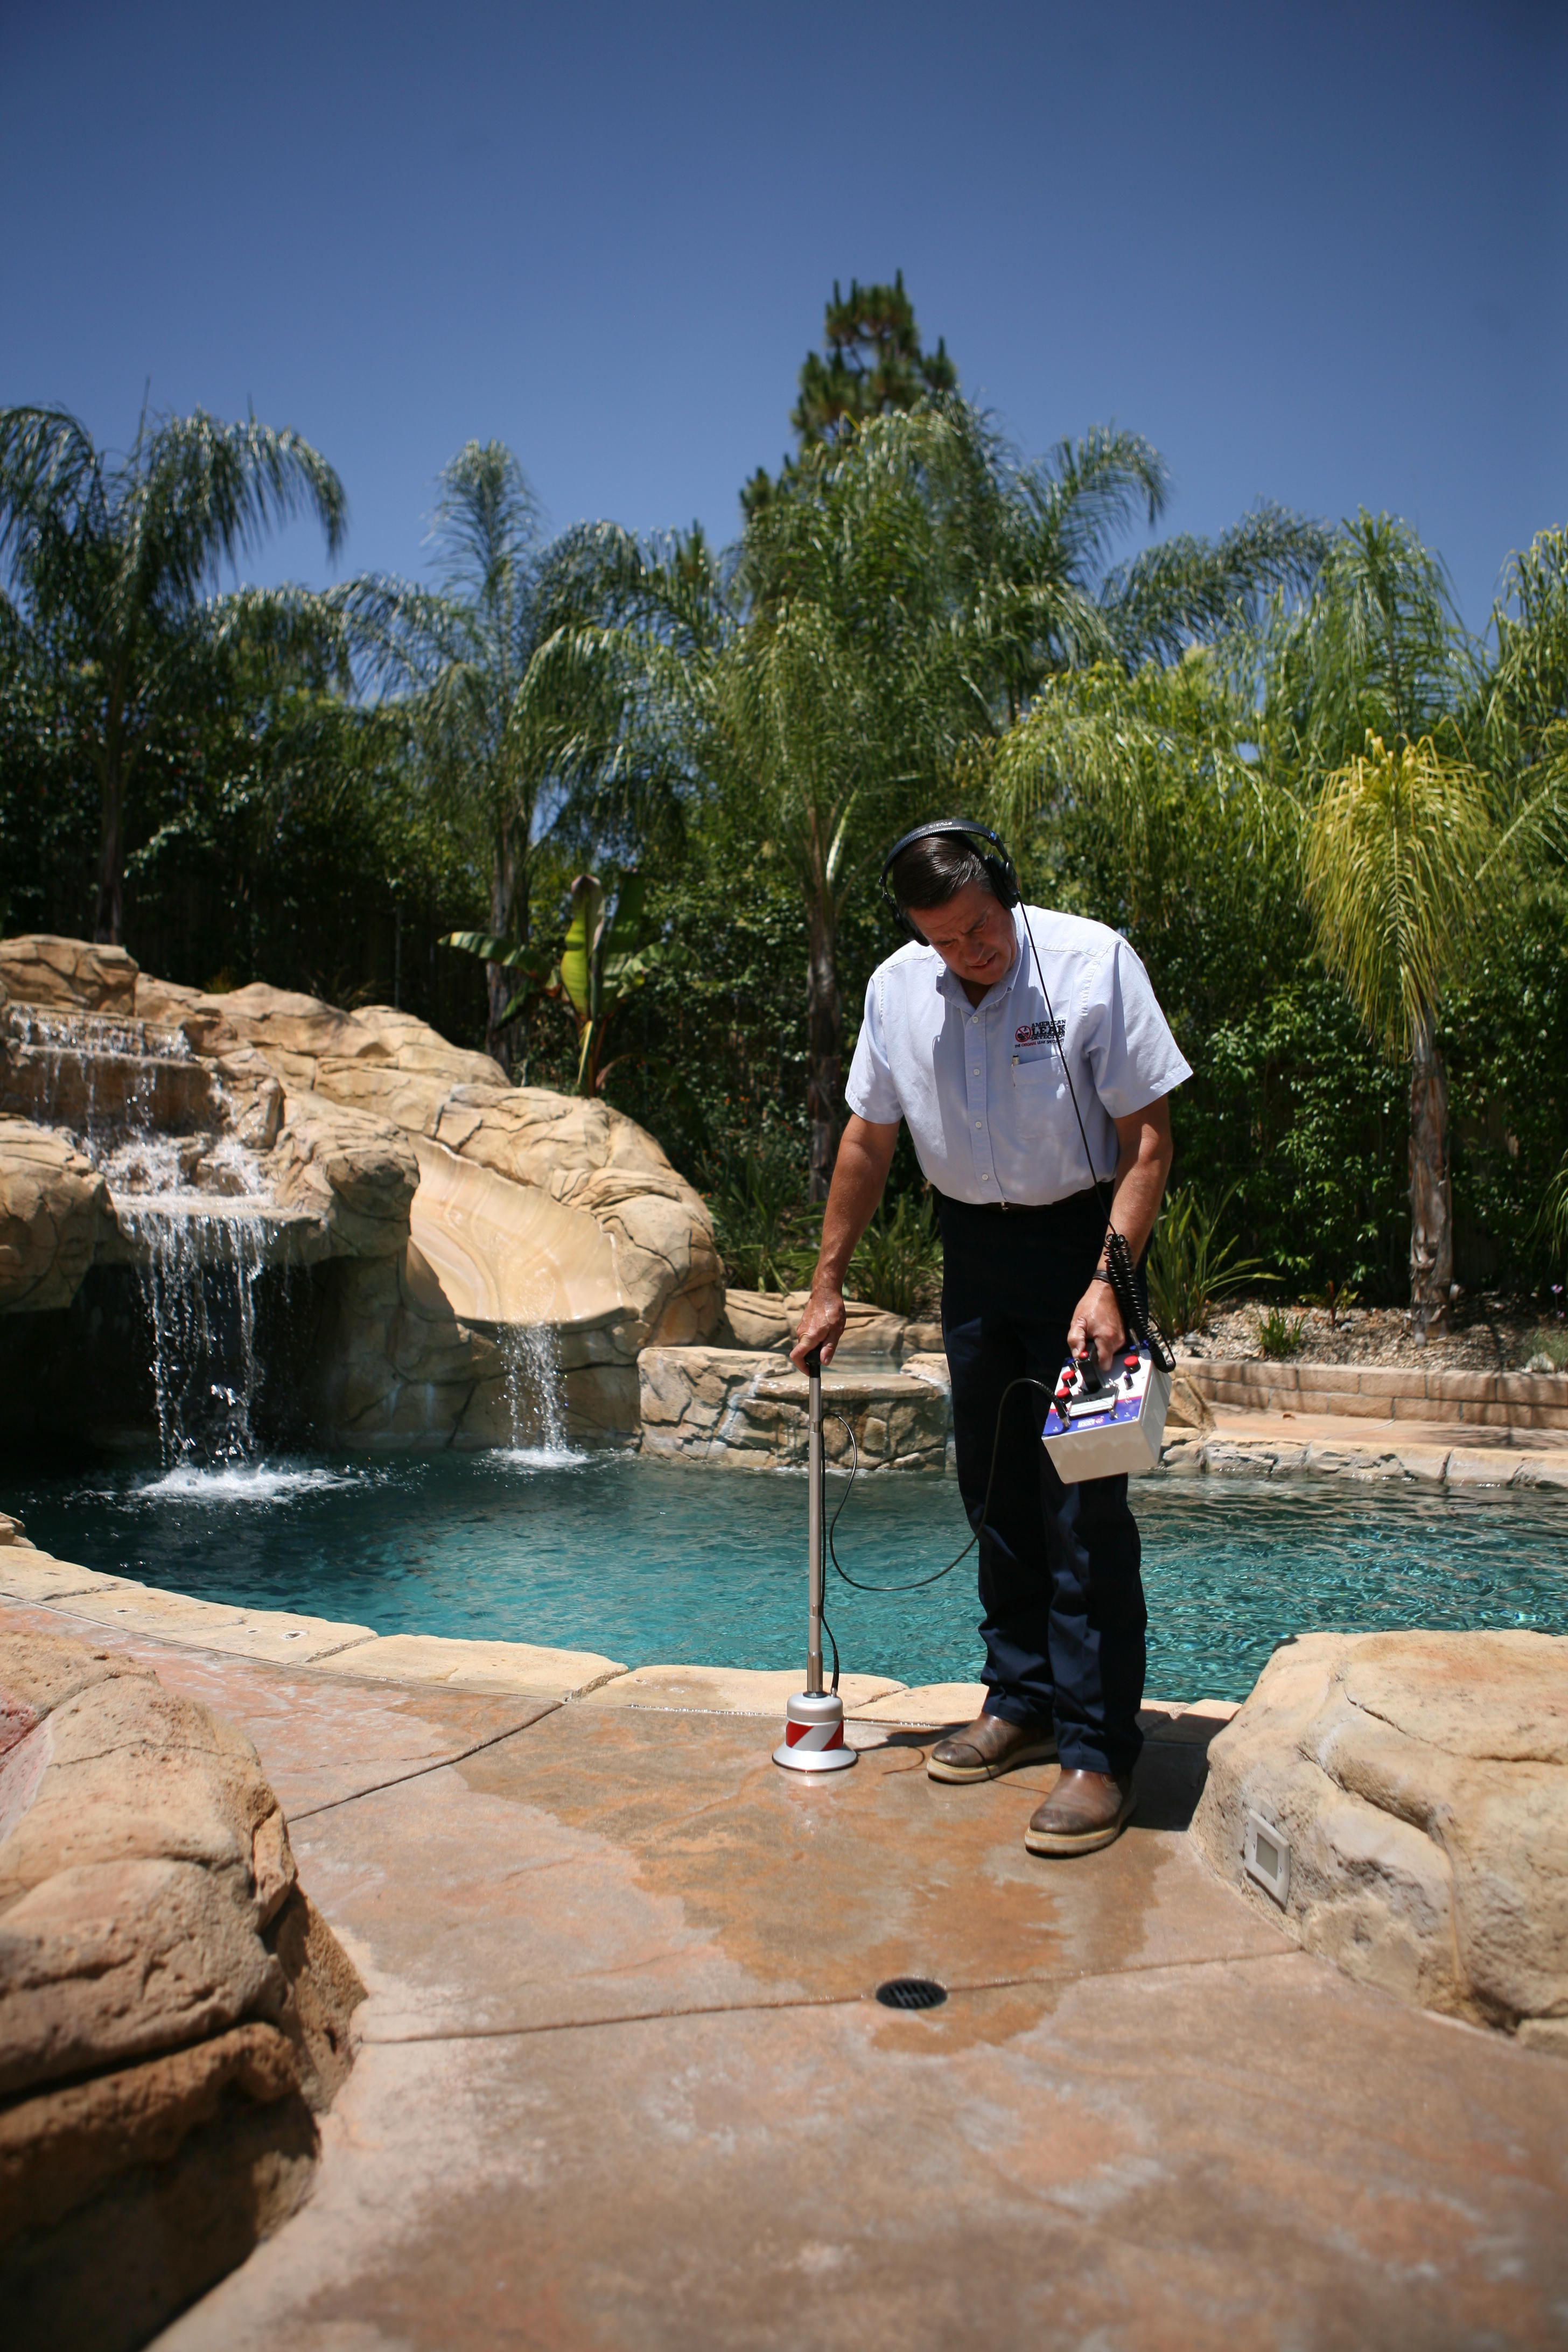 Our Non Invasive Leak Detection Solution Saves You Money Reduces Damage And Protects Your Property Value